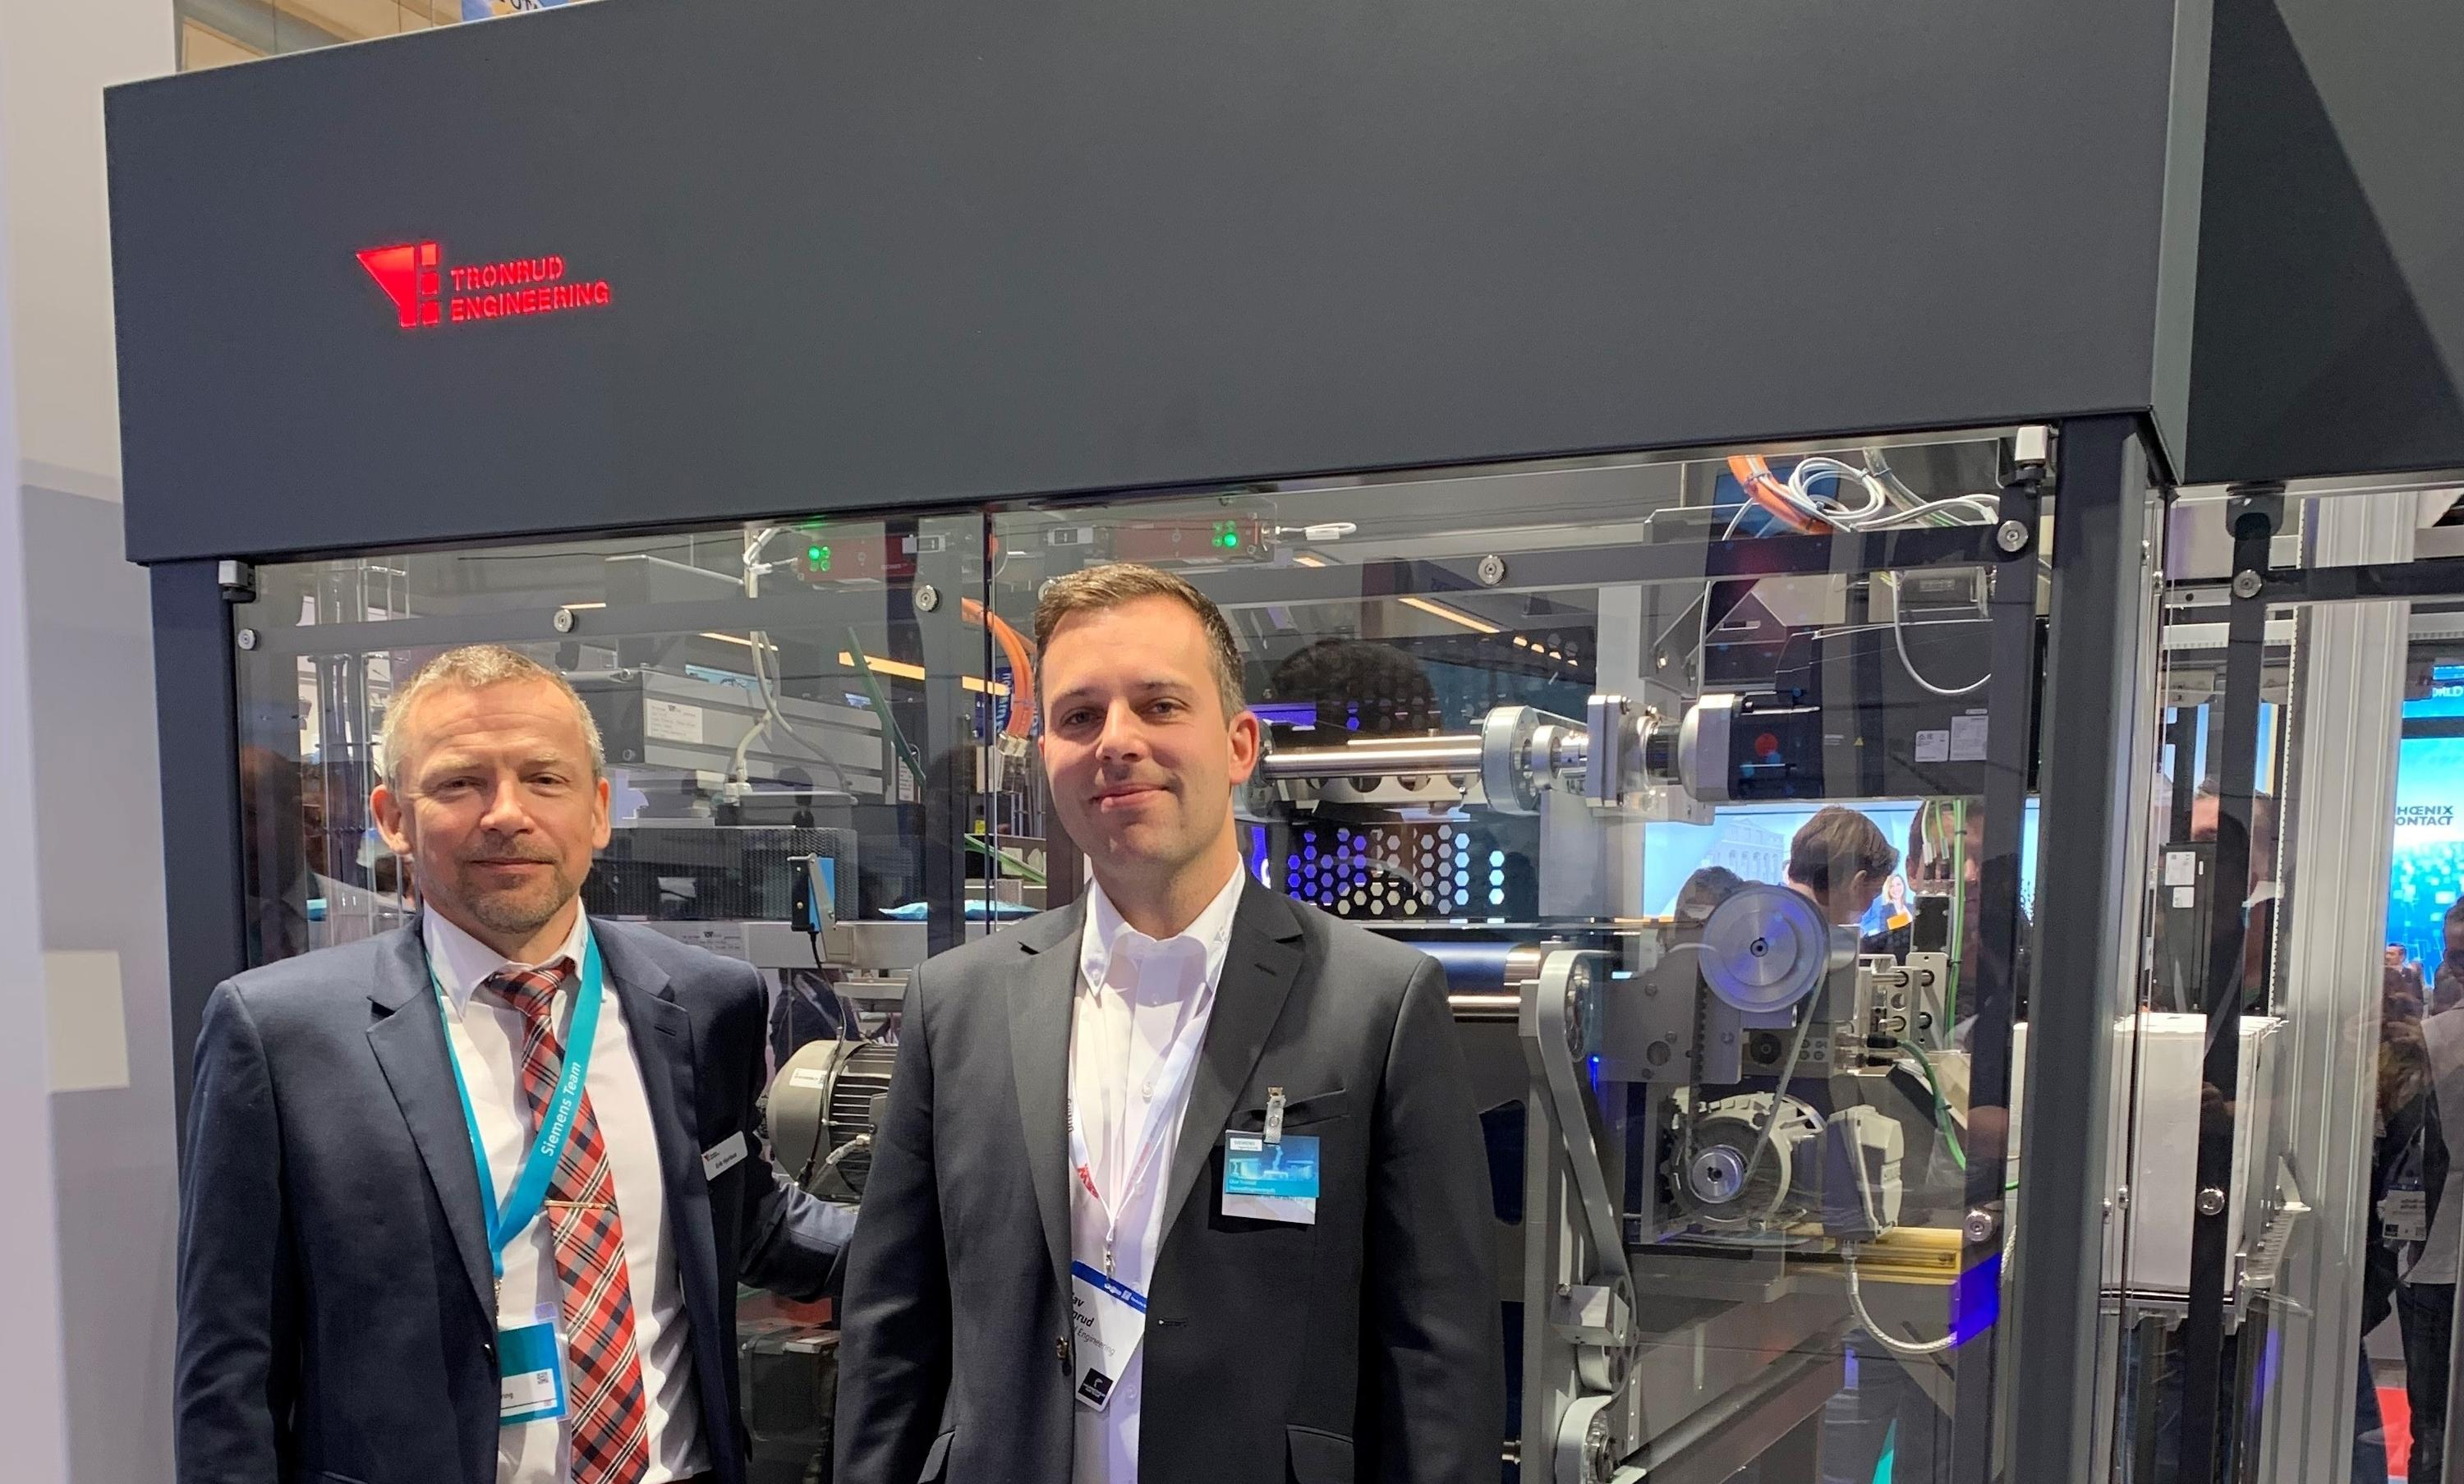 First Norwegian company presented by Siemens at the Hannover Messe 2019